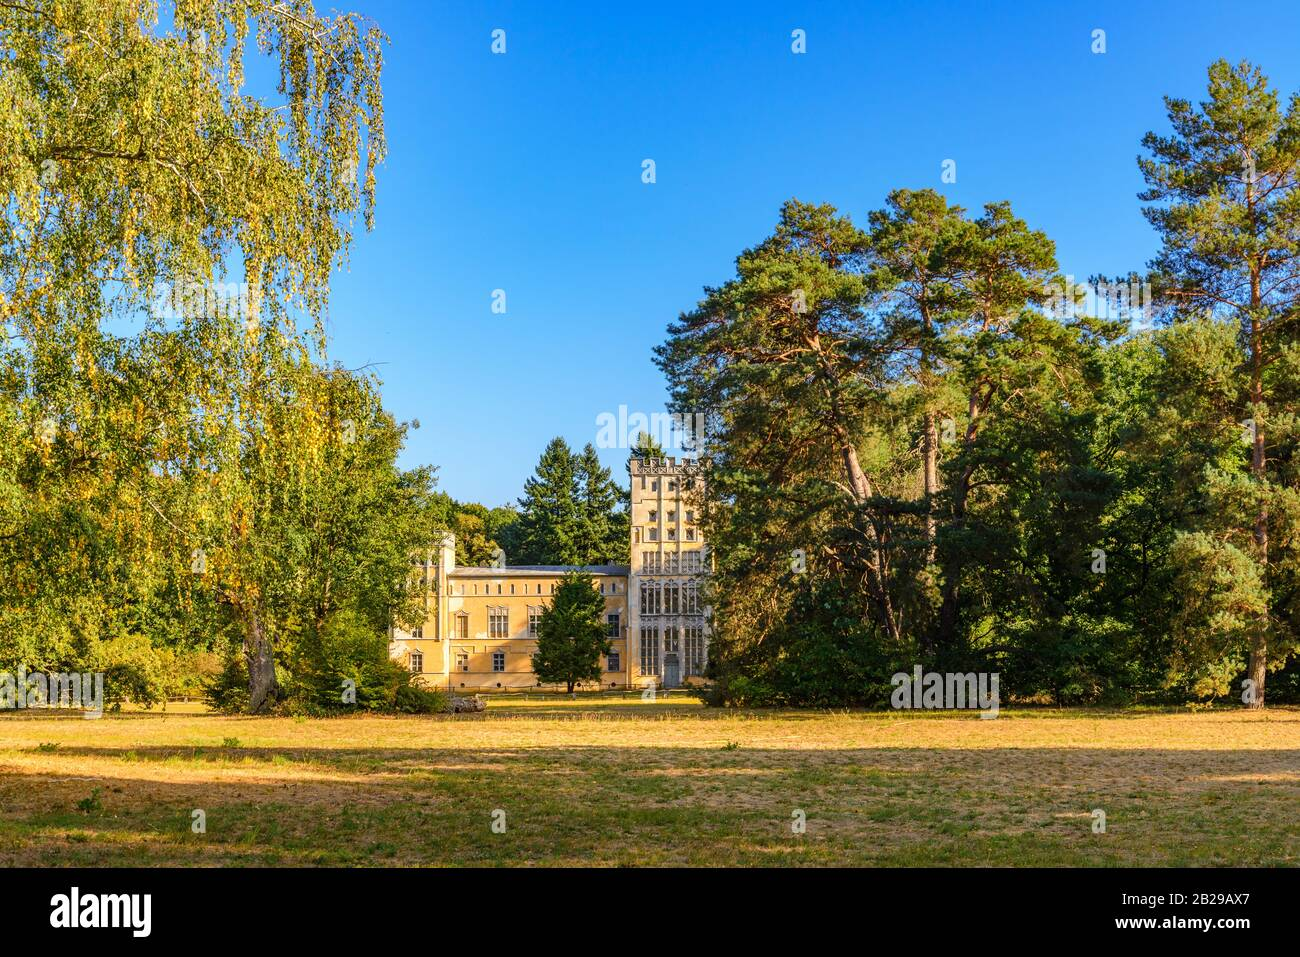 Scenery of the house, Kavaliershaus, surrounded by tree at Pfaueninsel, Peacock island, located on Wannsee lake in Berlin, Germany in Autumn season. Stock Photo